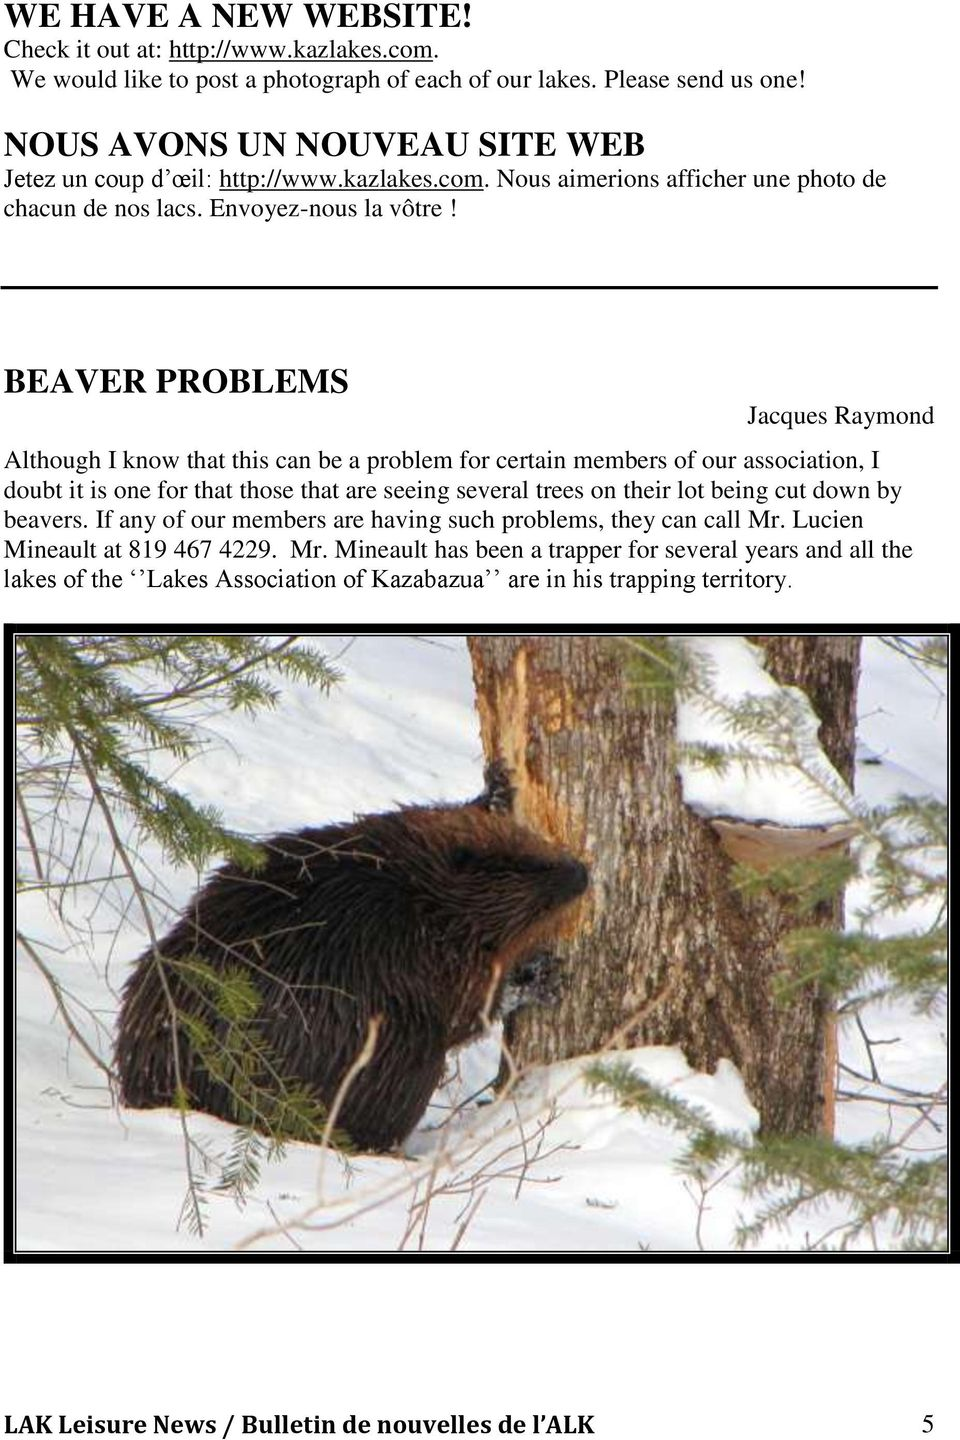 BEAVER PROBLEMS Jacques Raymond Although I know that this can be a problem for certain members of our association, I doubt it is one for that those that are seeing several trees on their lot being